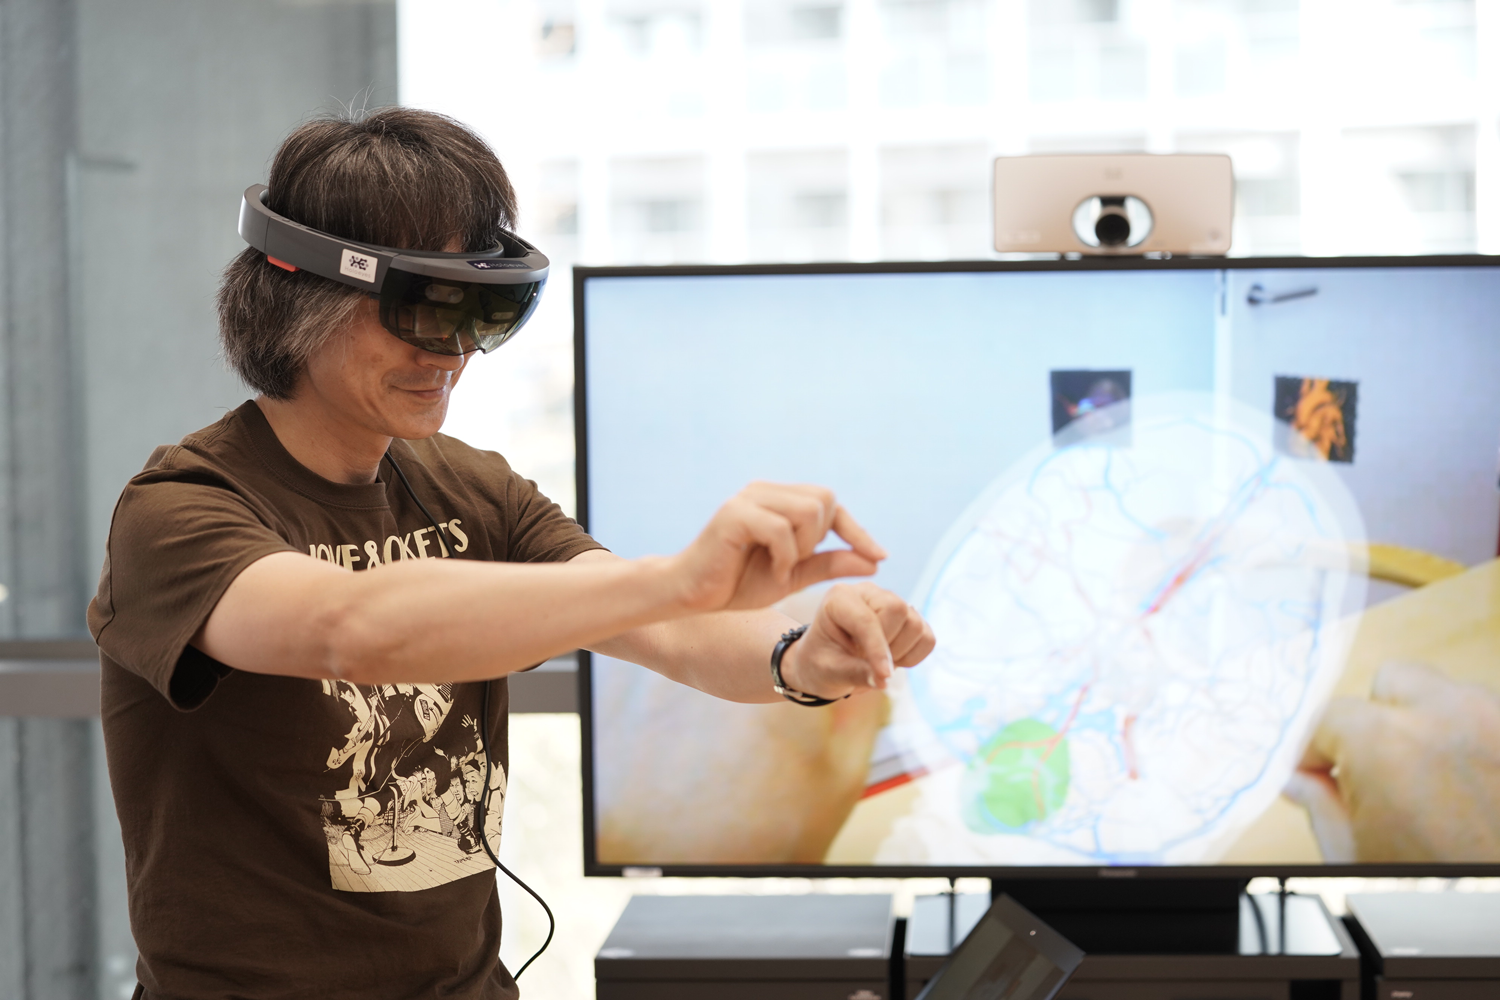 VR surgery is becoming a reality, thanks to Holoeyes: Naoji